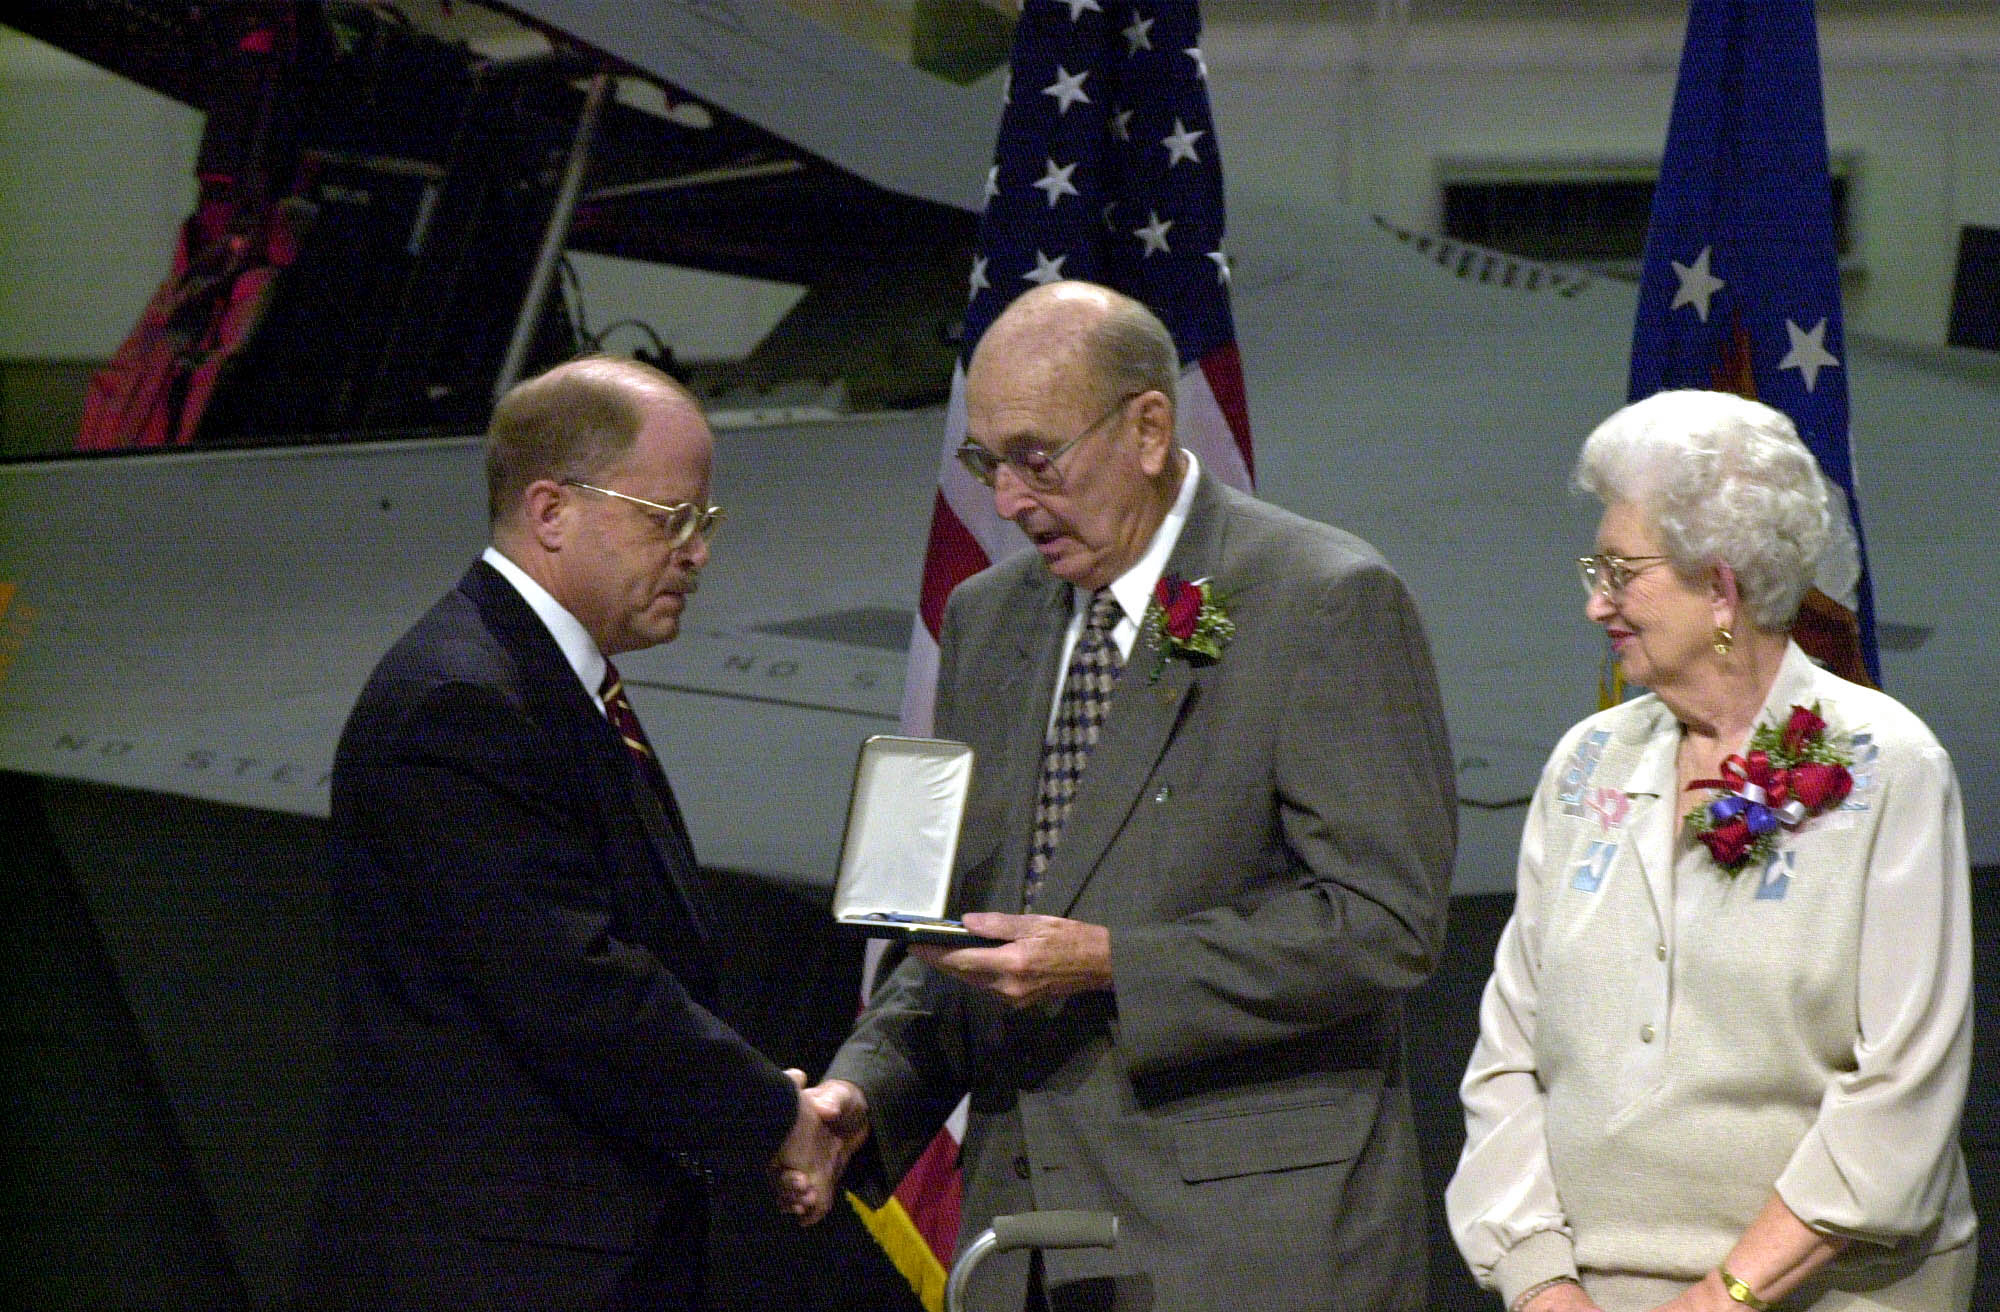 William F. Pitsenbarger Accepts the MOH for William H. Pitsenbarger